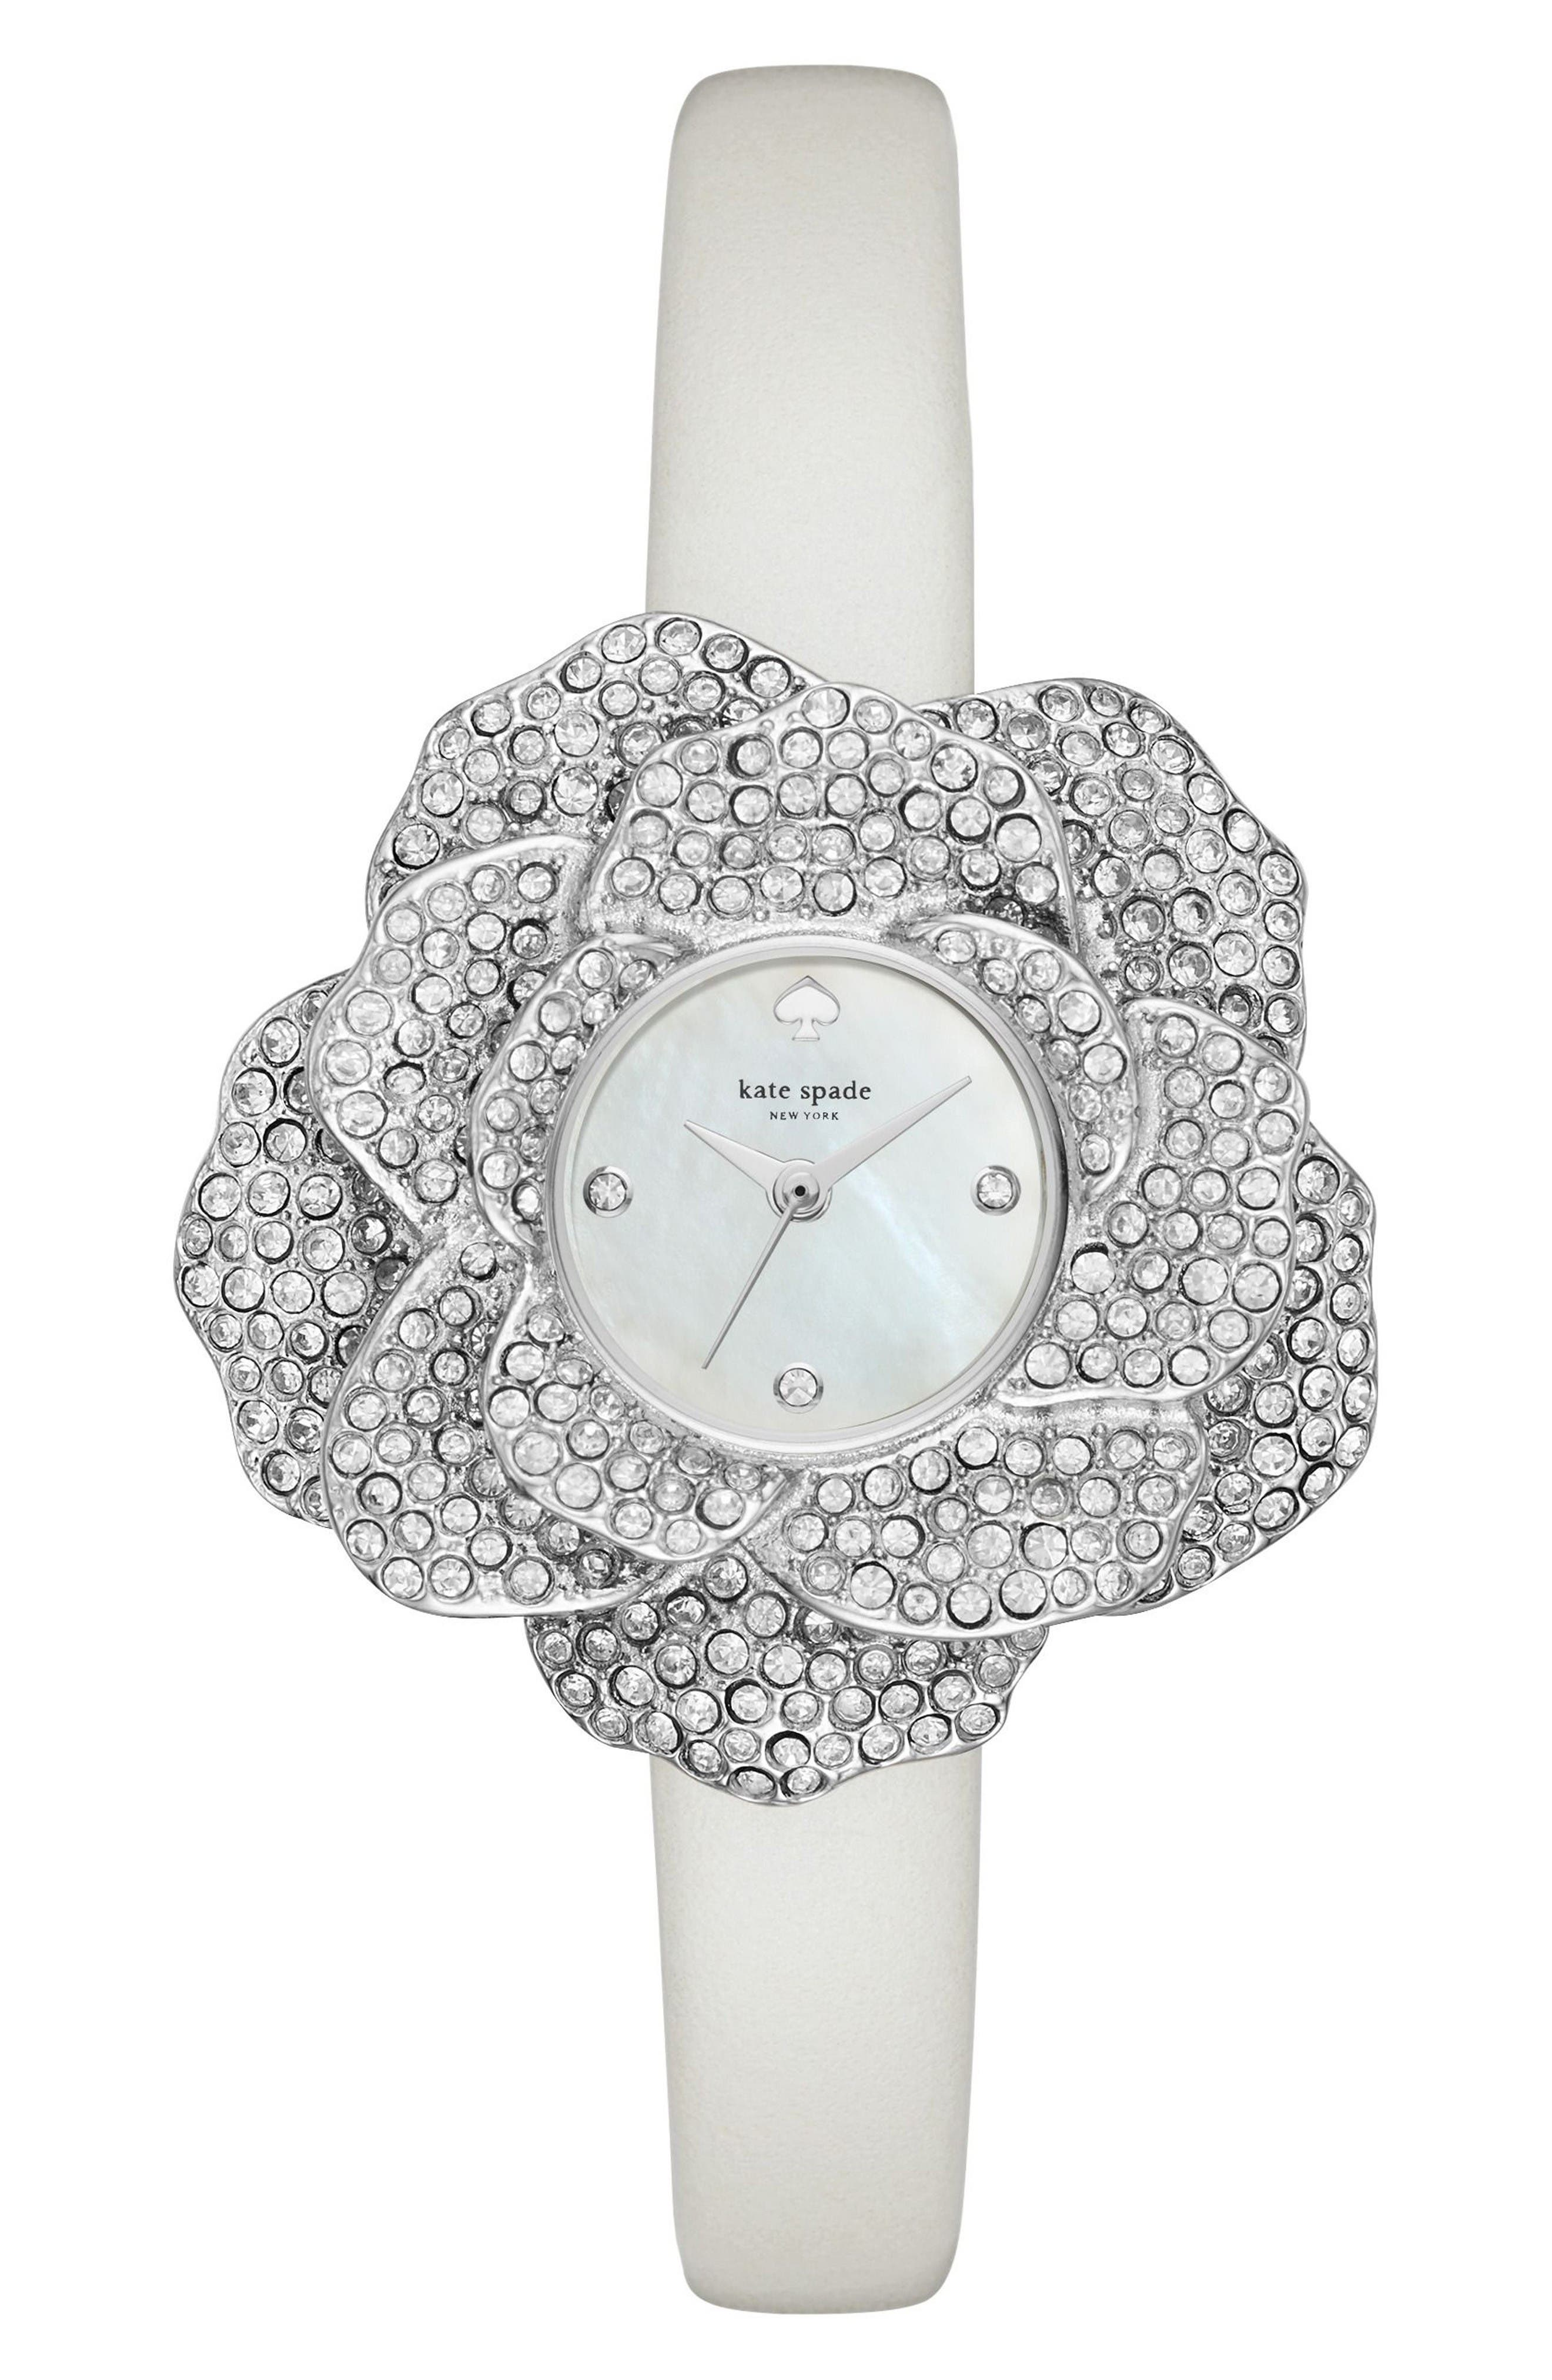 kate spade new york crystal rose leather strap watch, 26mm